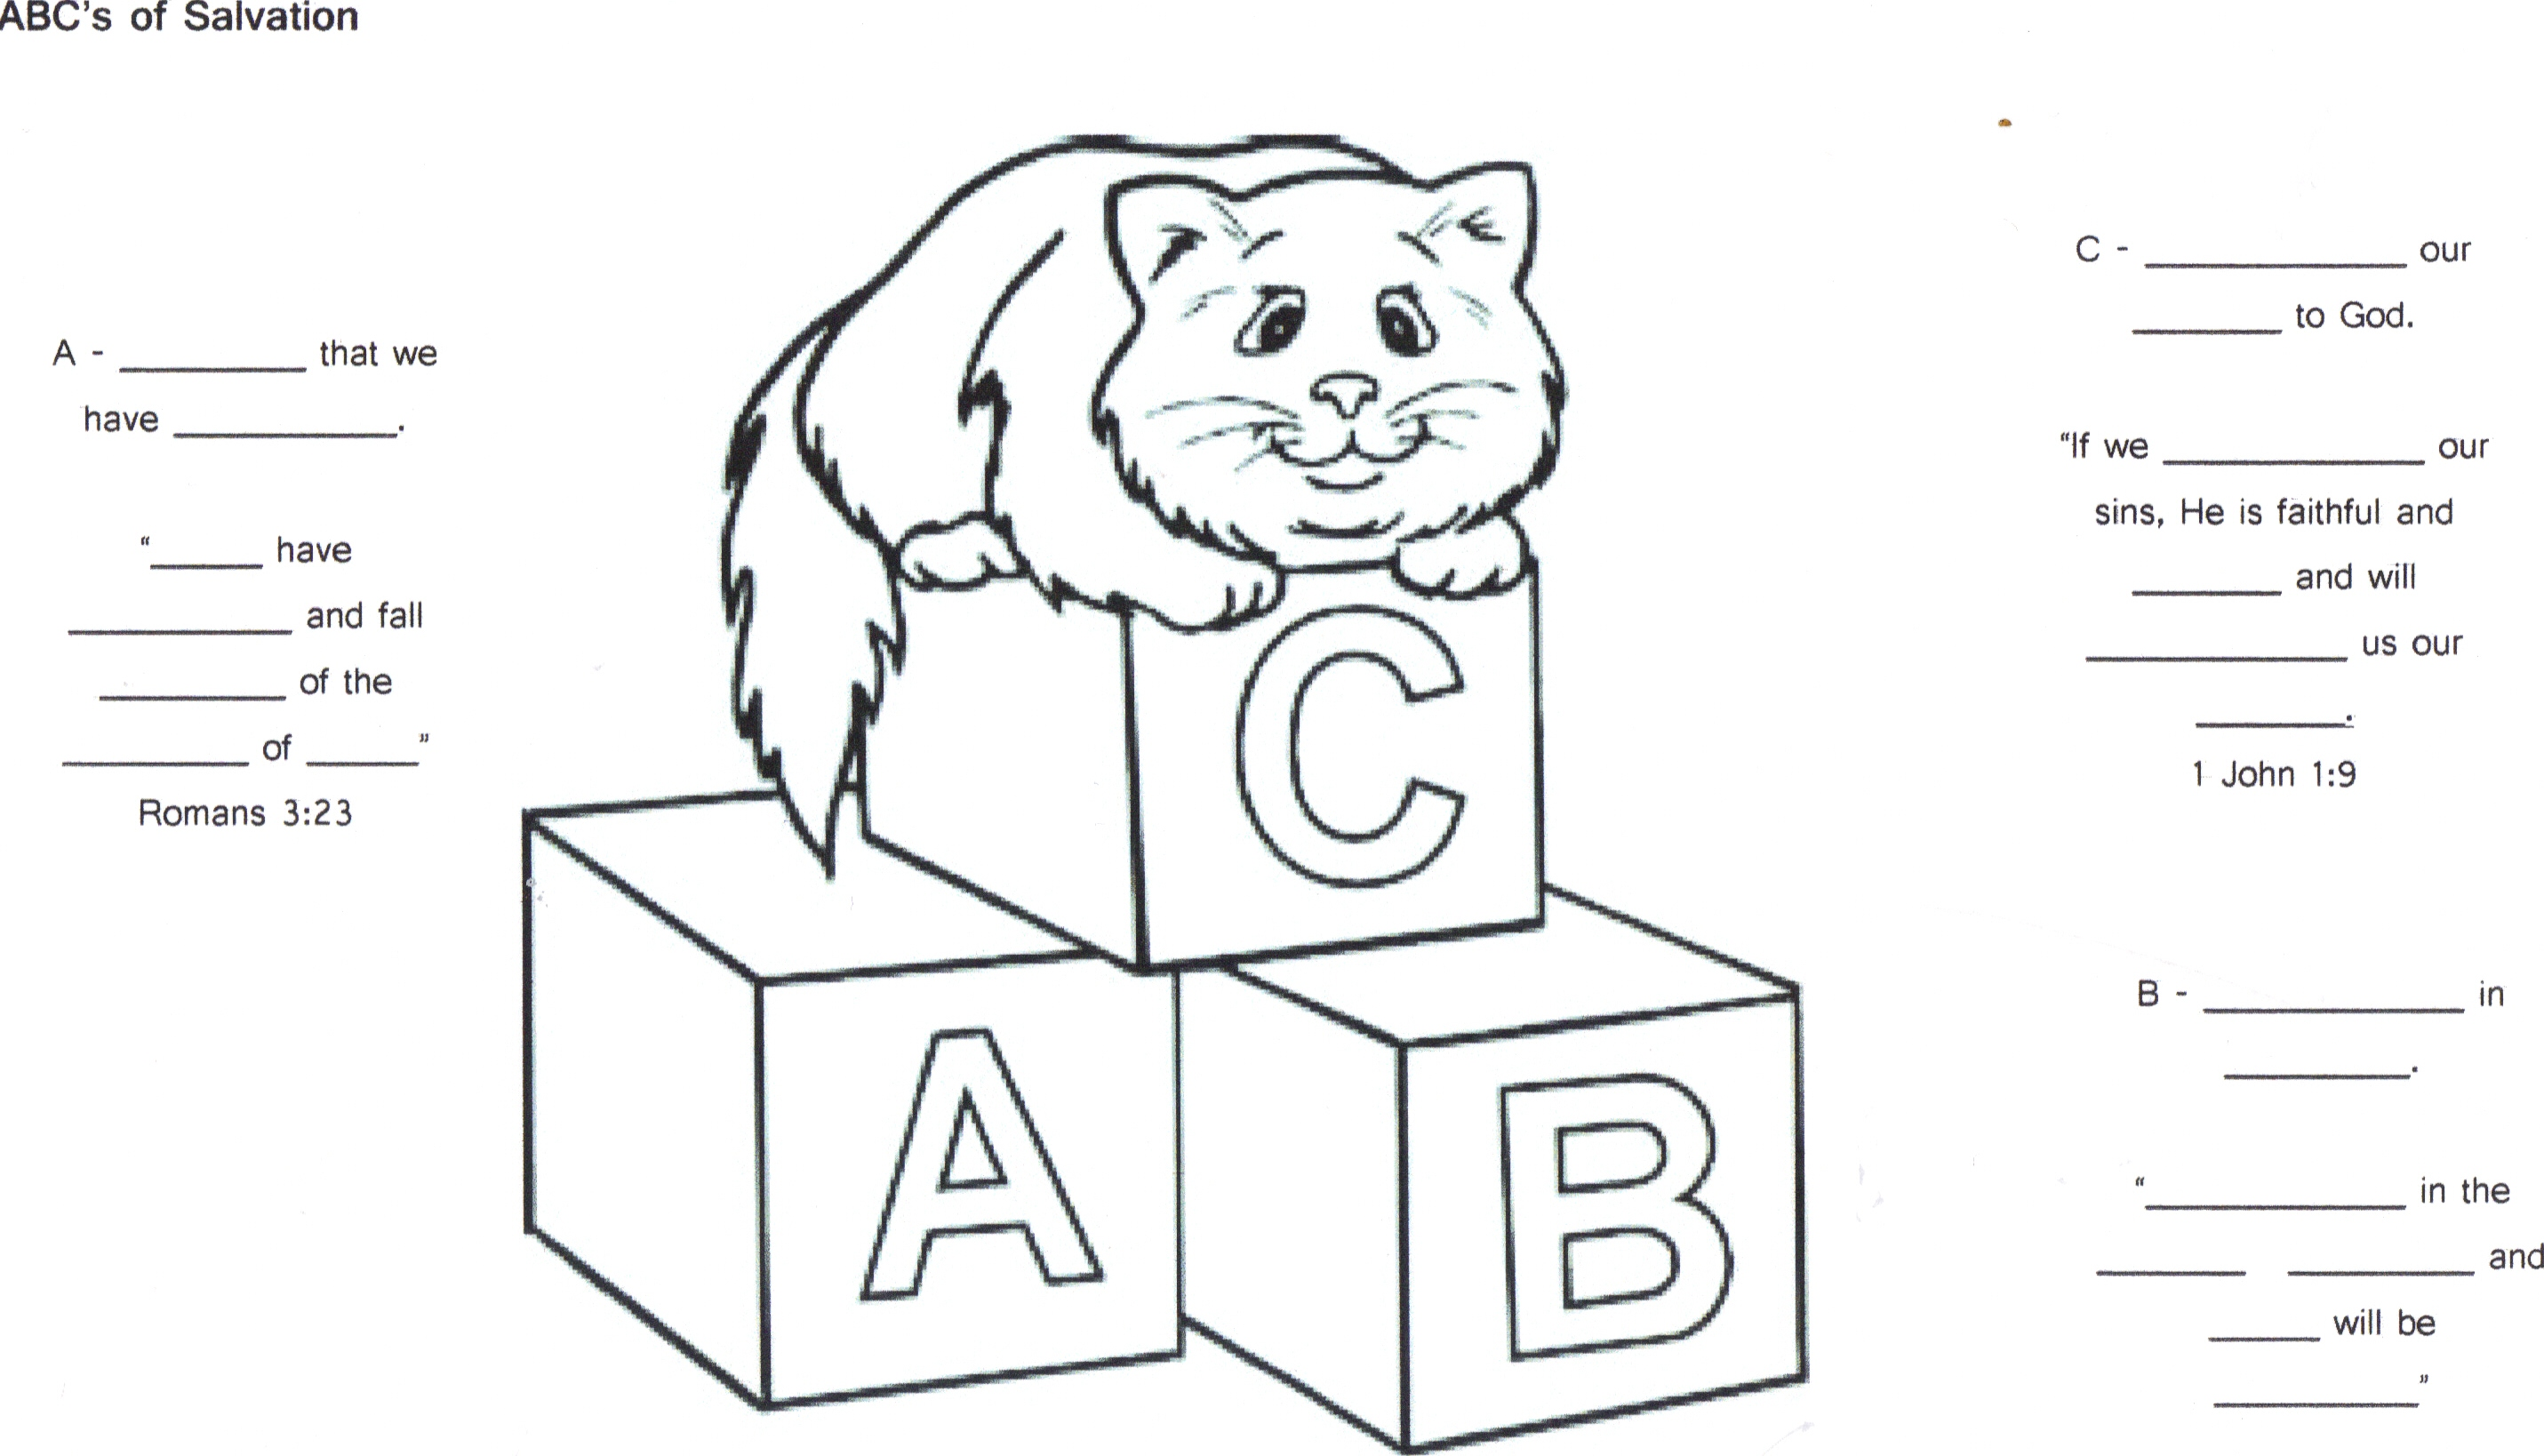 Abc Salvation Worksheet